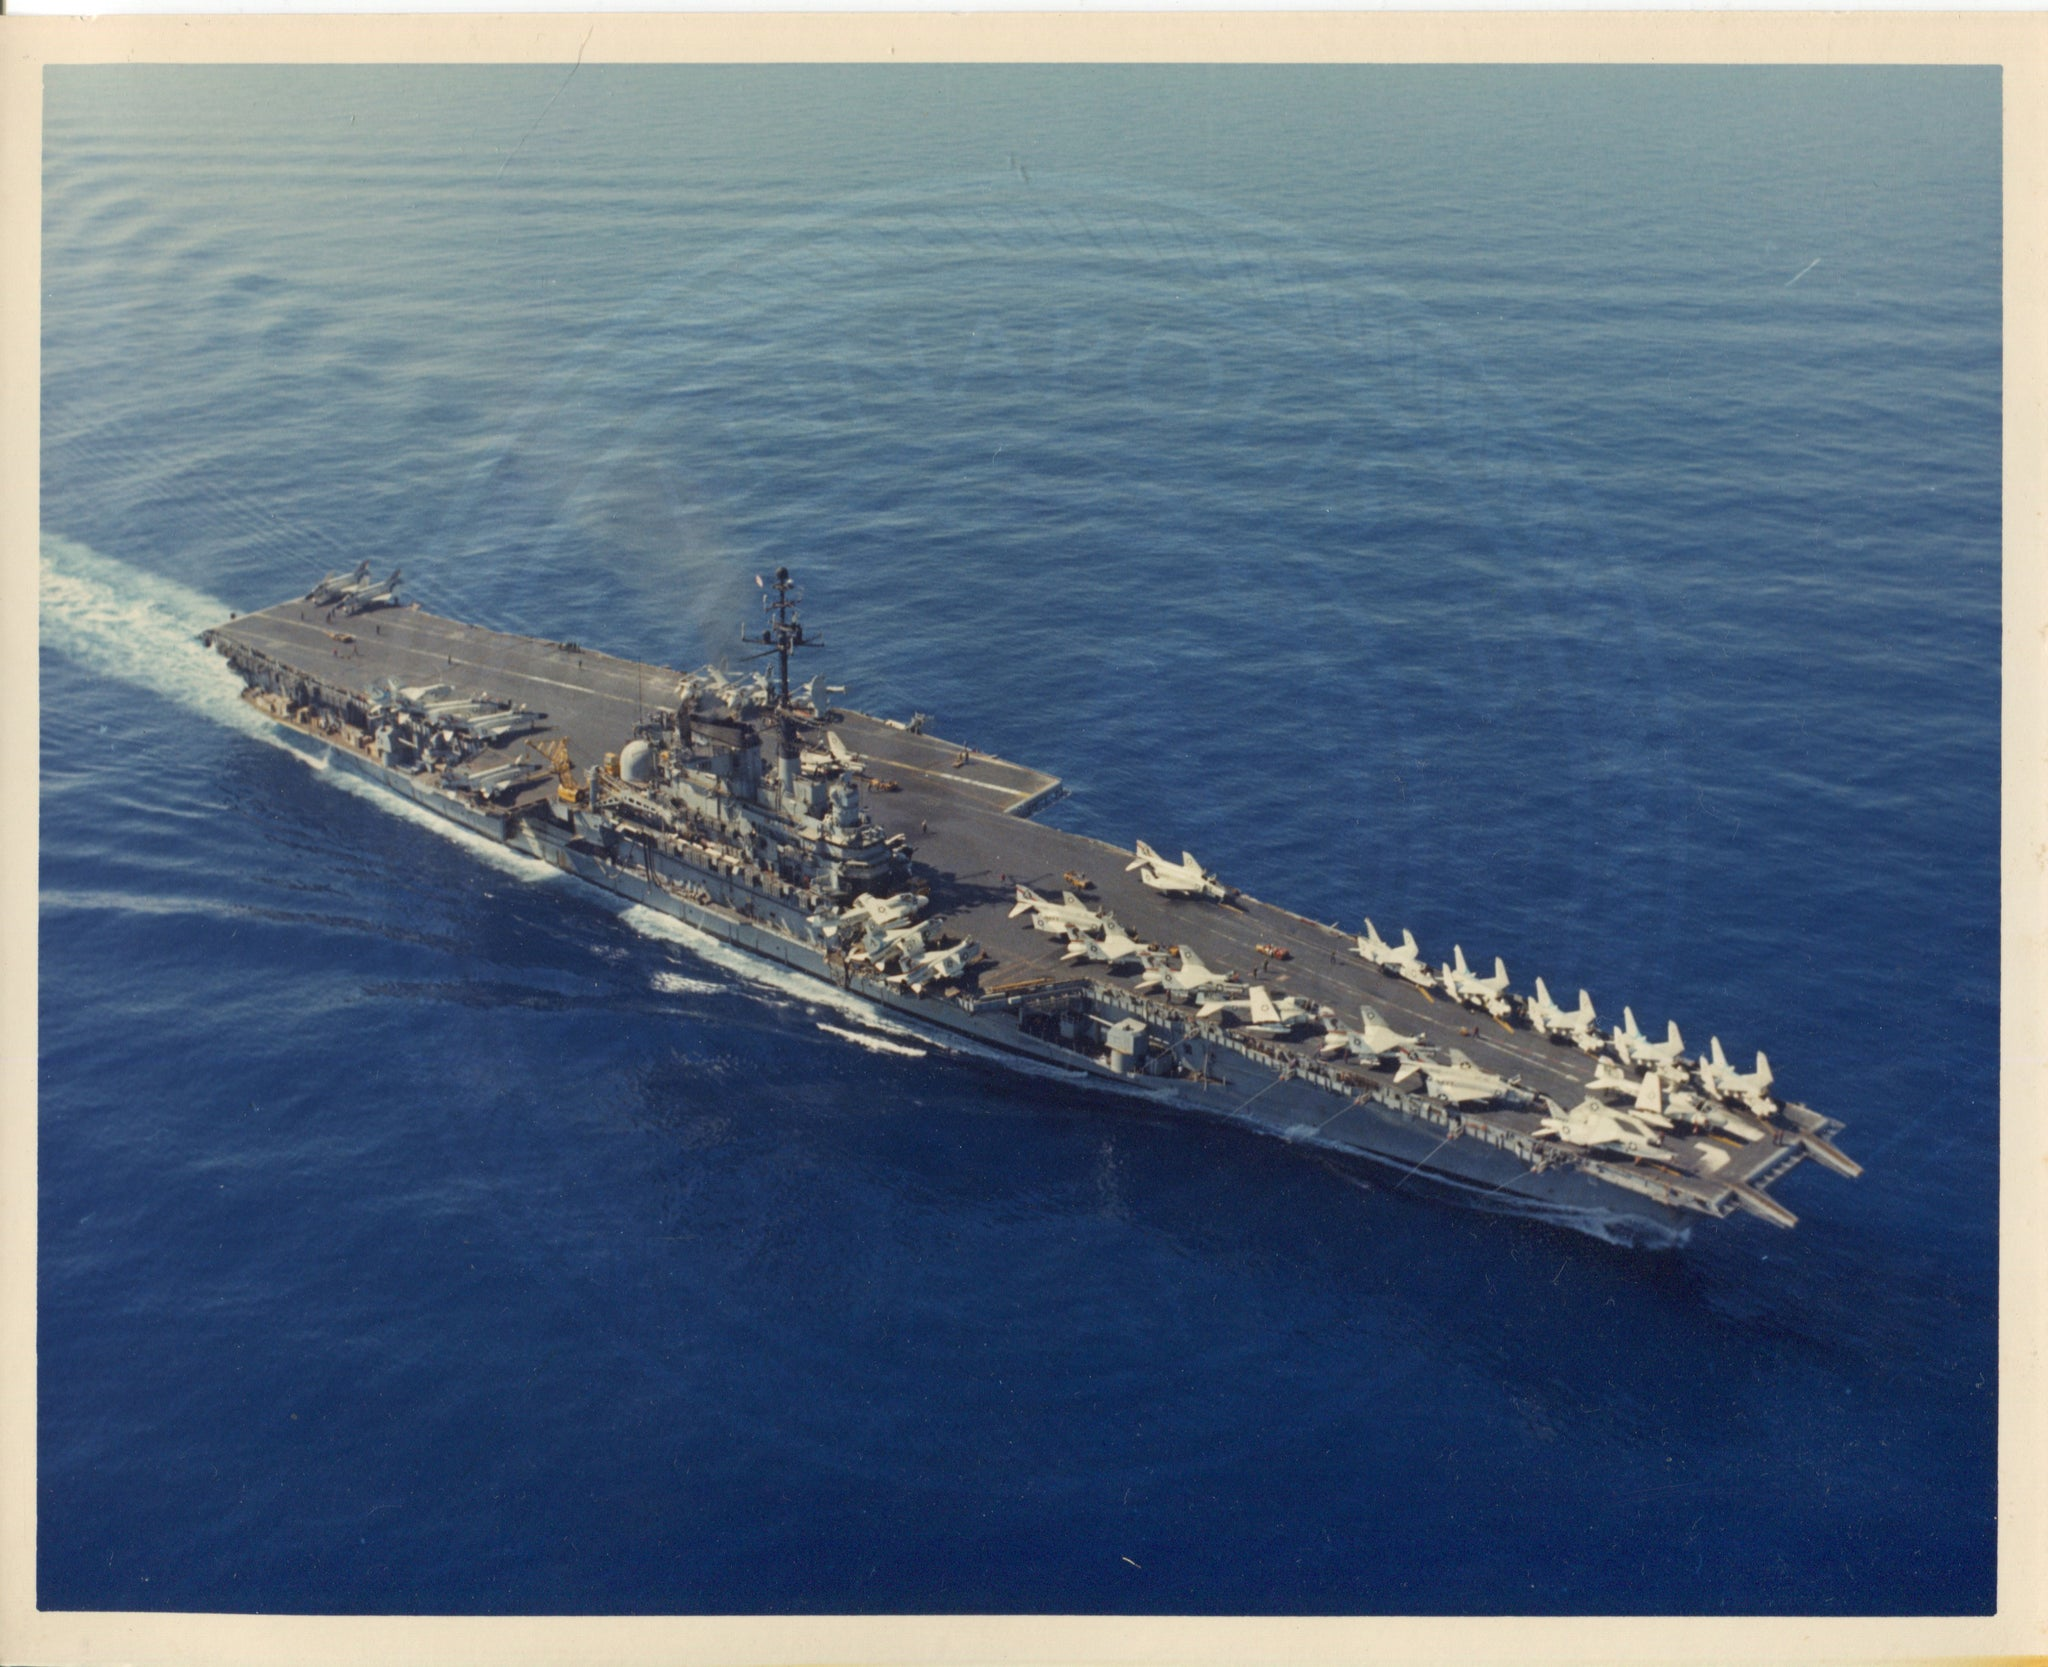 Official Navy Photo of WWII era USS Franklin D. Roosevelt (CVA-42) Aircraft Carrier - Annapolis Maritime Antiques